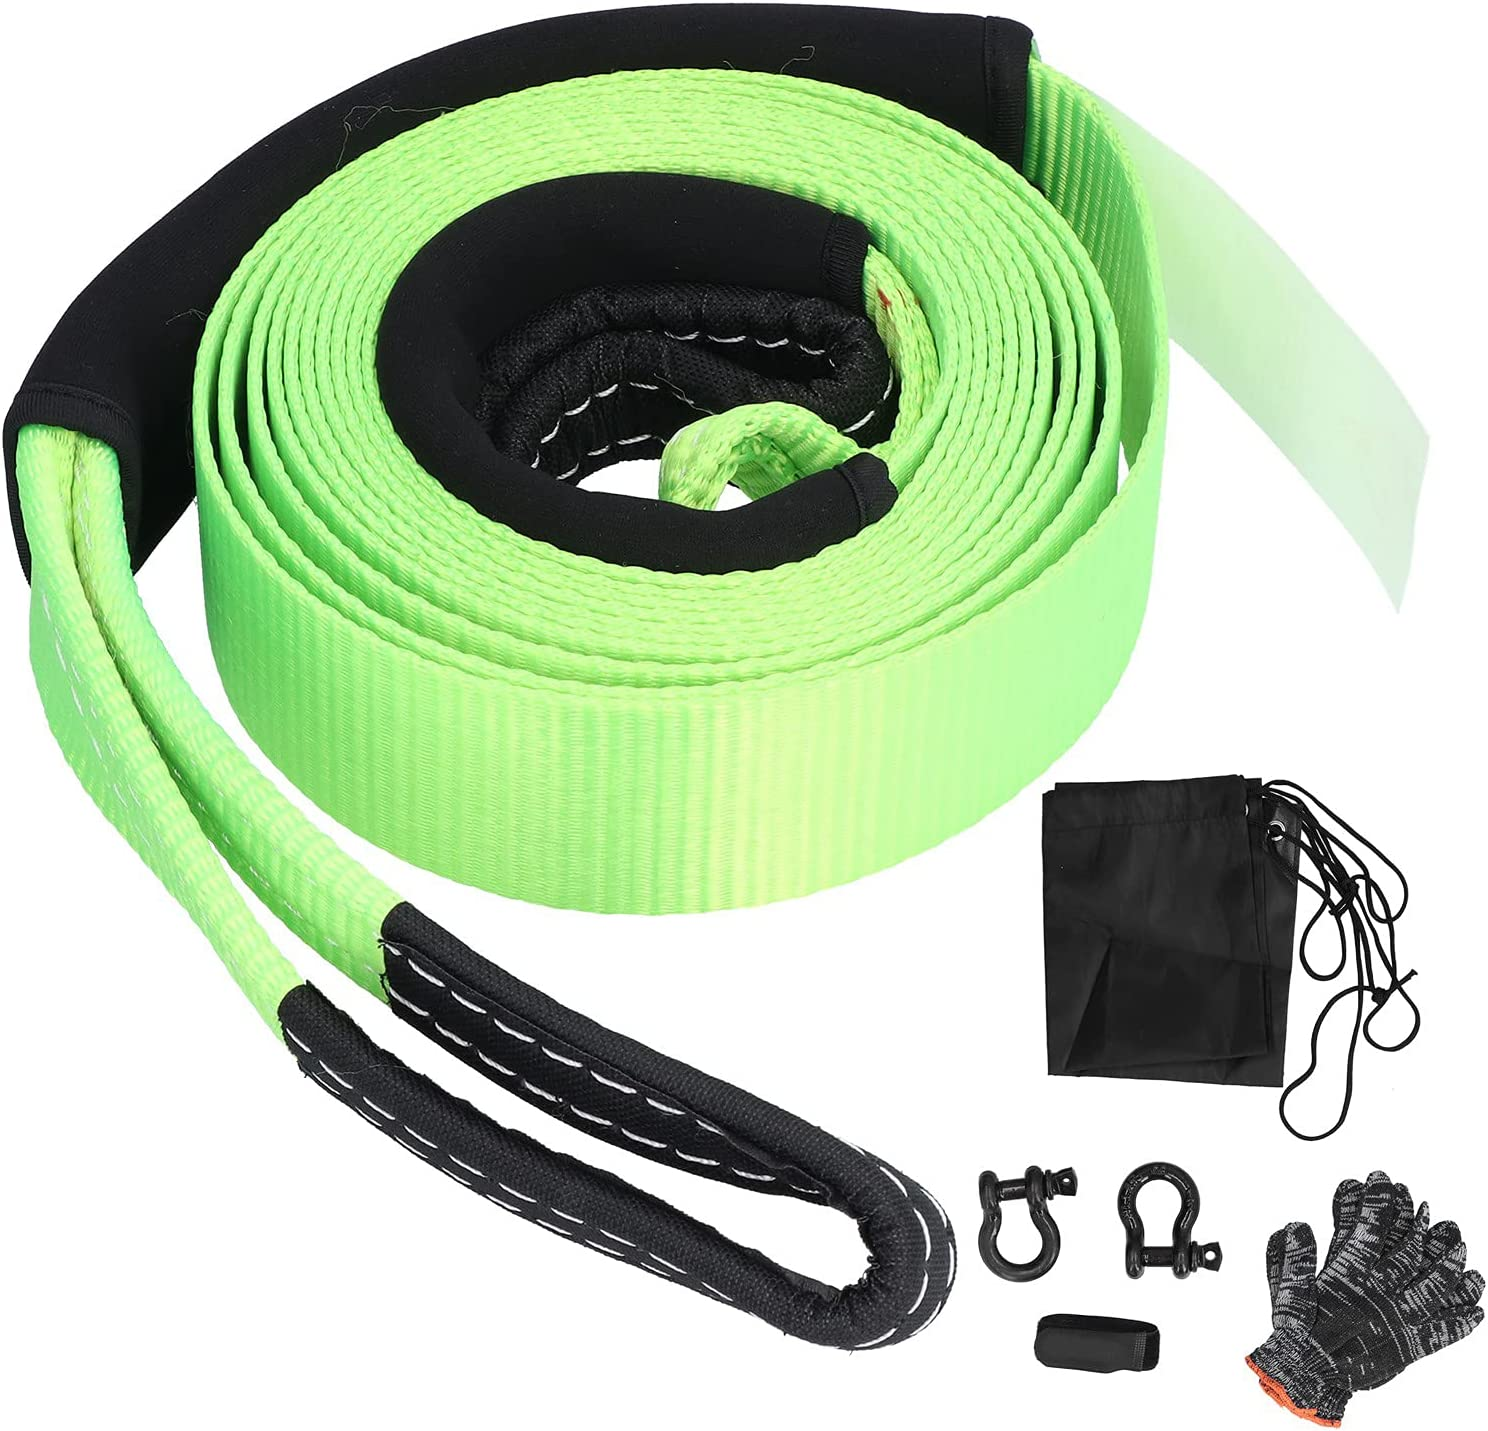 Tow Hook Las Vegas Mall shipfree Rope Off‑Road Recovery Polyester Str Pull Pulling